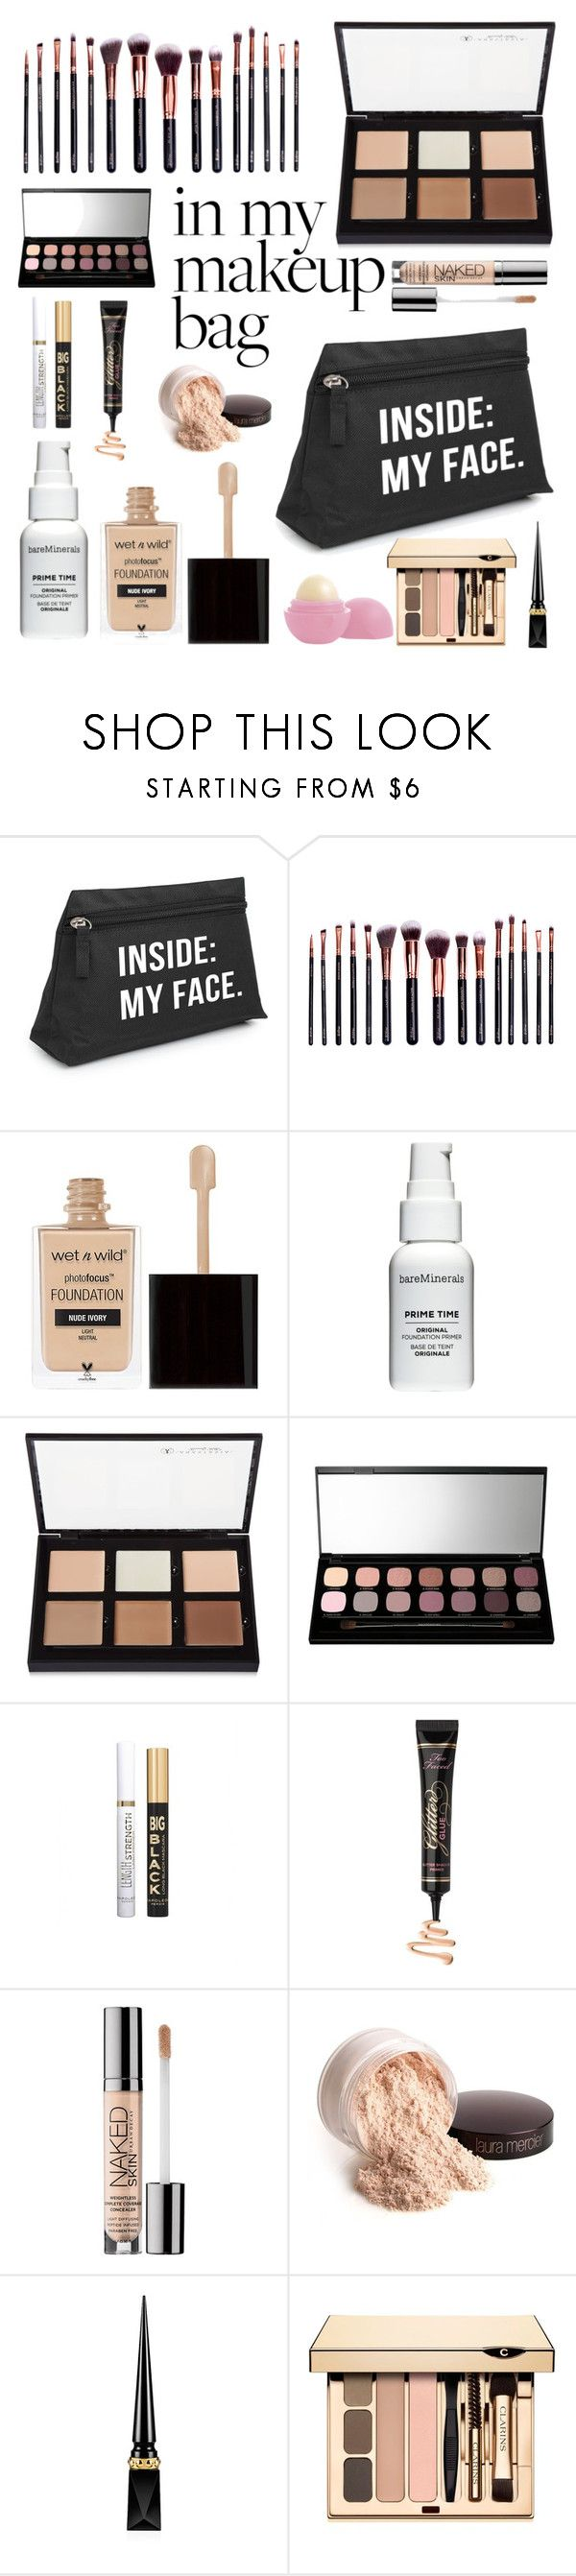 """""""Makeup Bag"""" by marie-alterego ❤ liked on Polyvore featuring beauty, M.O.T.D Cosmetics, Wet n Wild, Bare Escentuals, Anastasia Beverly Hills, Napoleon Perdis, Too Faced Cosmetics, Urban Decay, Laura Mercier and Christian Louboutin"""